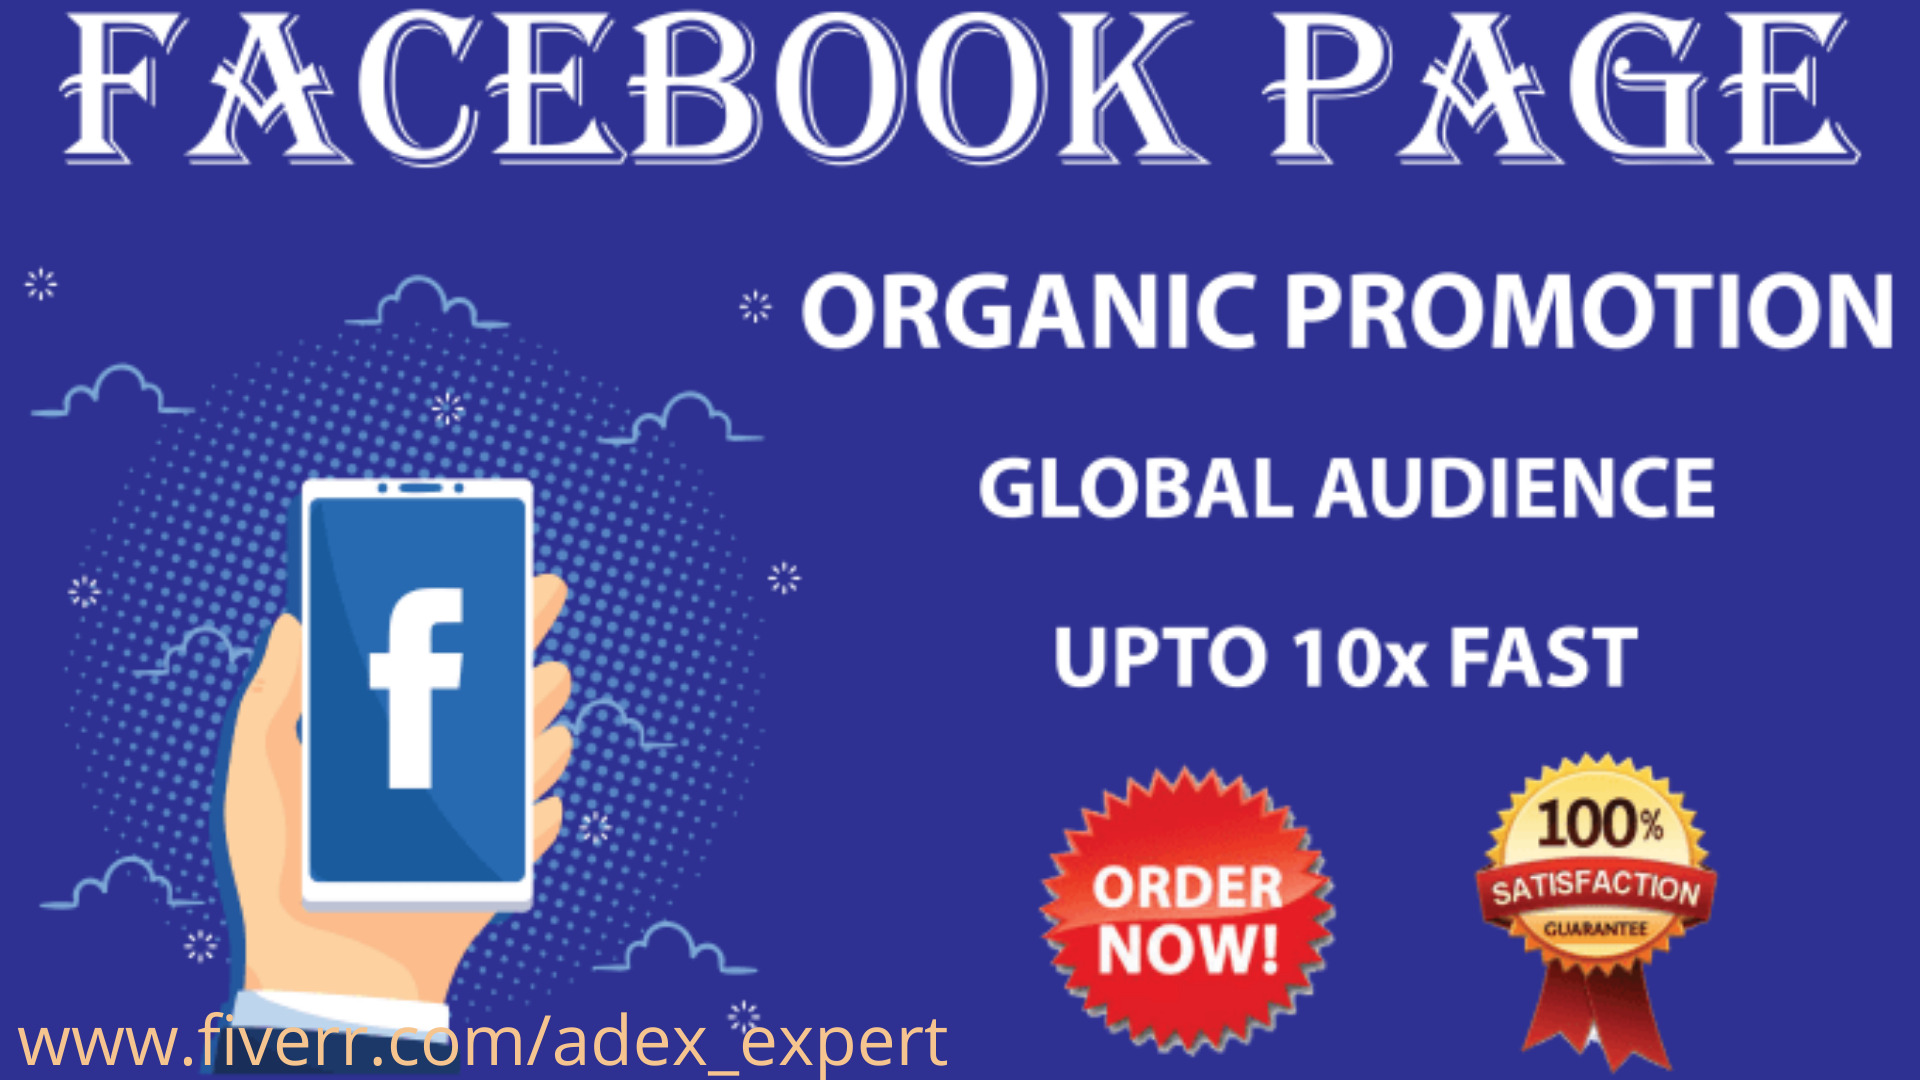 I will organically promote and market your facebook business page, FiverrBox